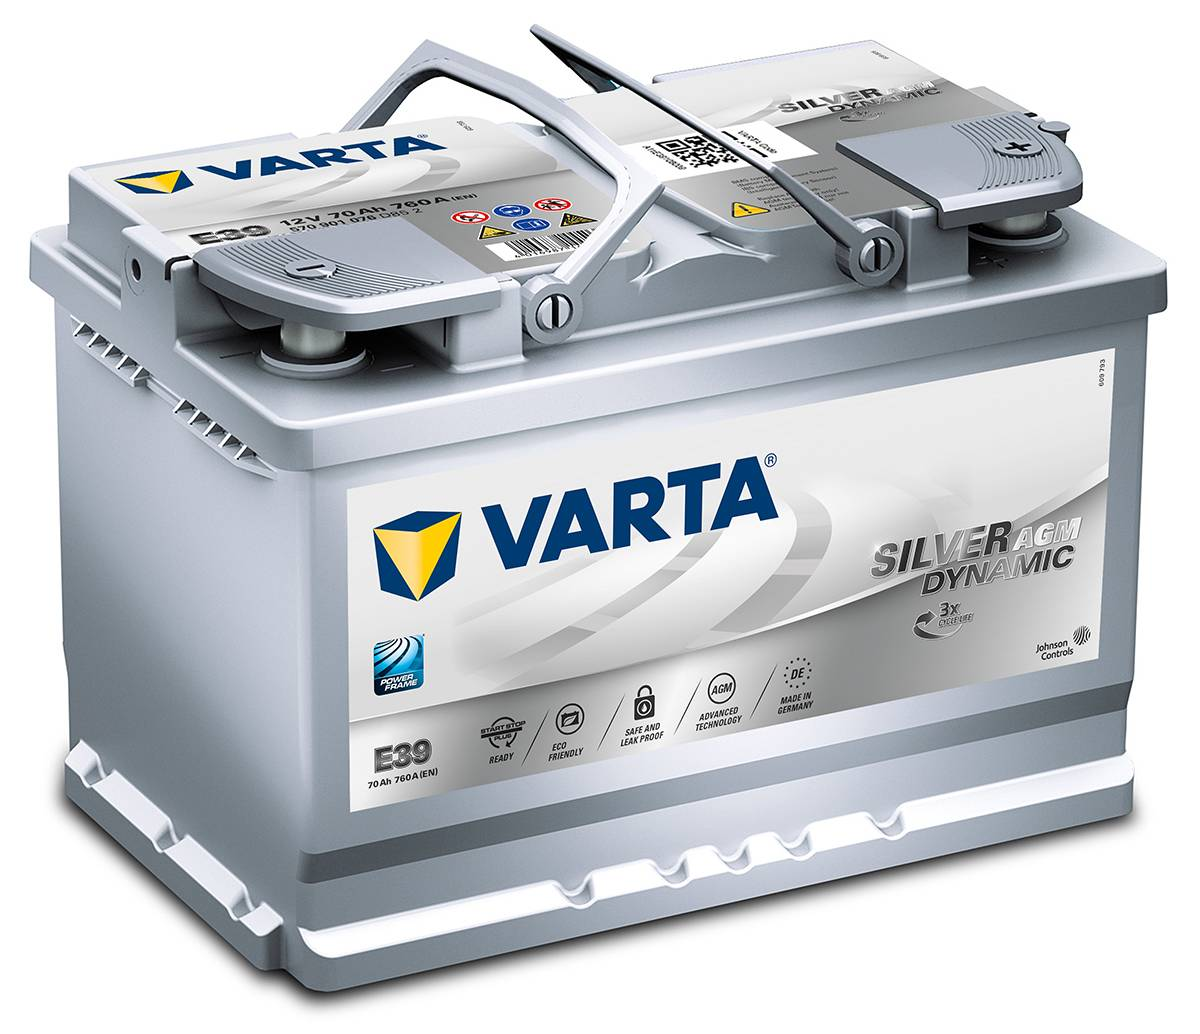 Varta E39 Heavy Duty 12 Volt 096 70Ah 760CCA AGM 4 Year Audi BMW VW Toyato Car Battery